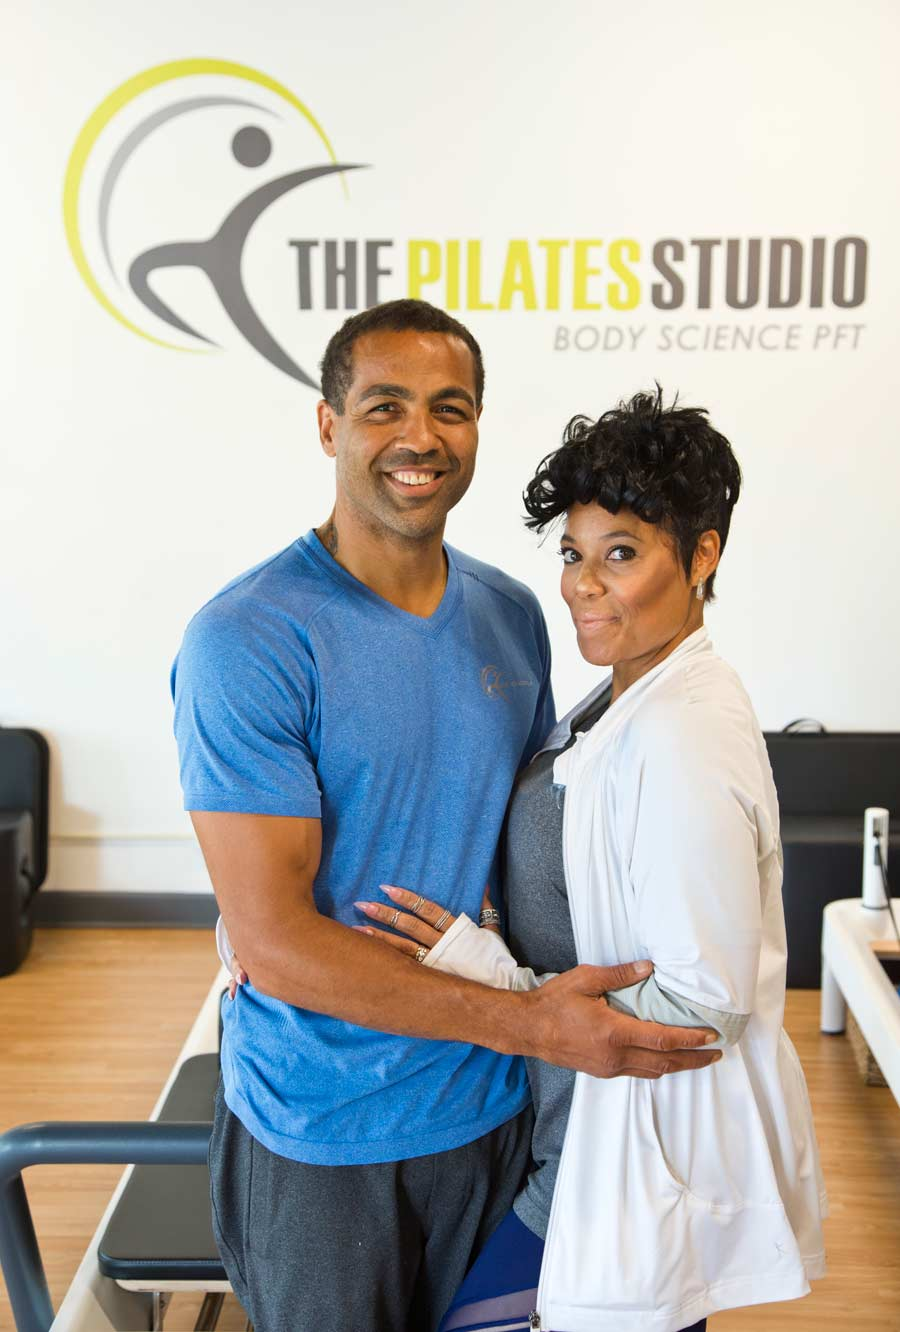 Owners Tony and Chai Duncan at the Body Science's Pilates Studio in Wilmette. The Duncans' live in Glenview Photography by Joel Lerner/JWC Media